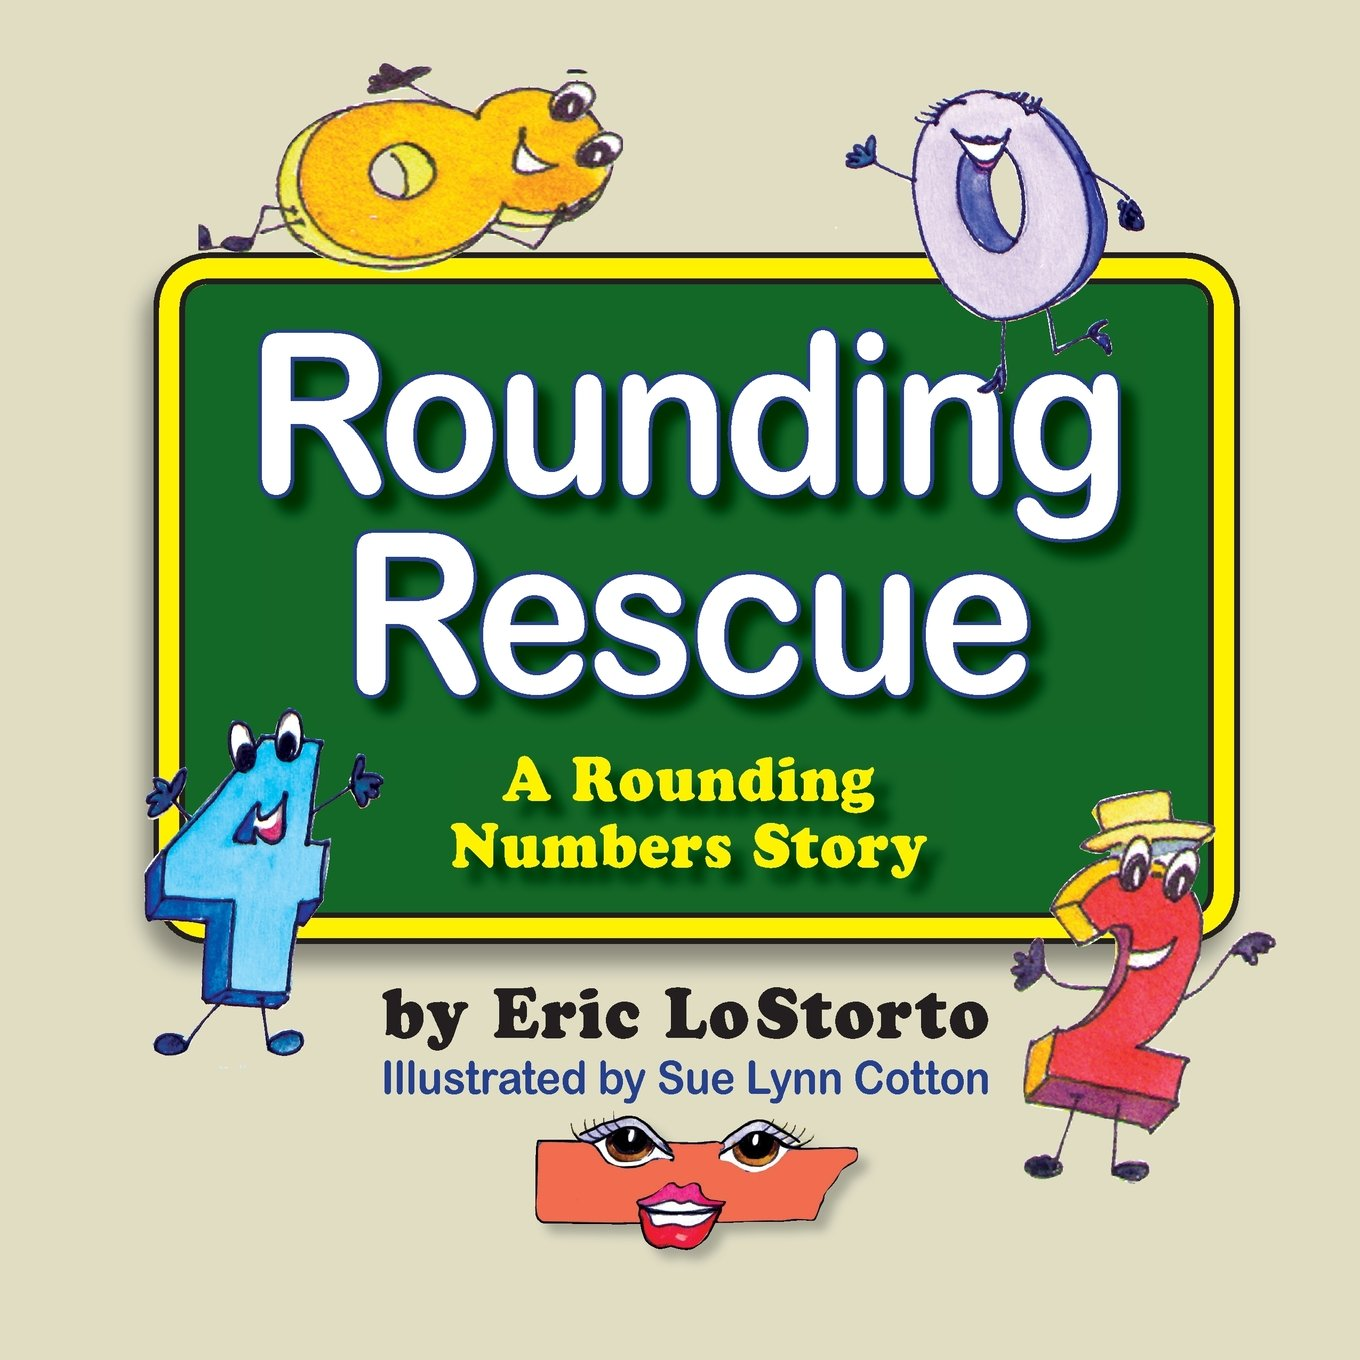 rounding rescue a rounding numbers story eric lostorto sue lynn